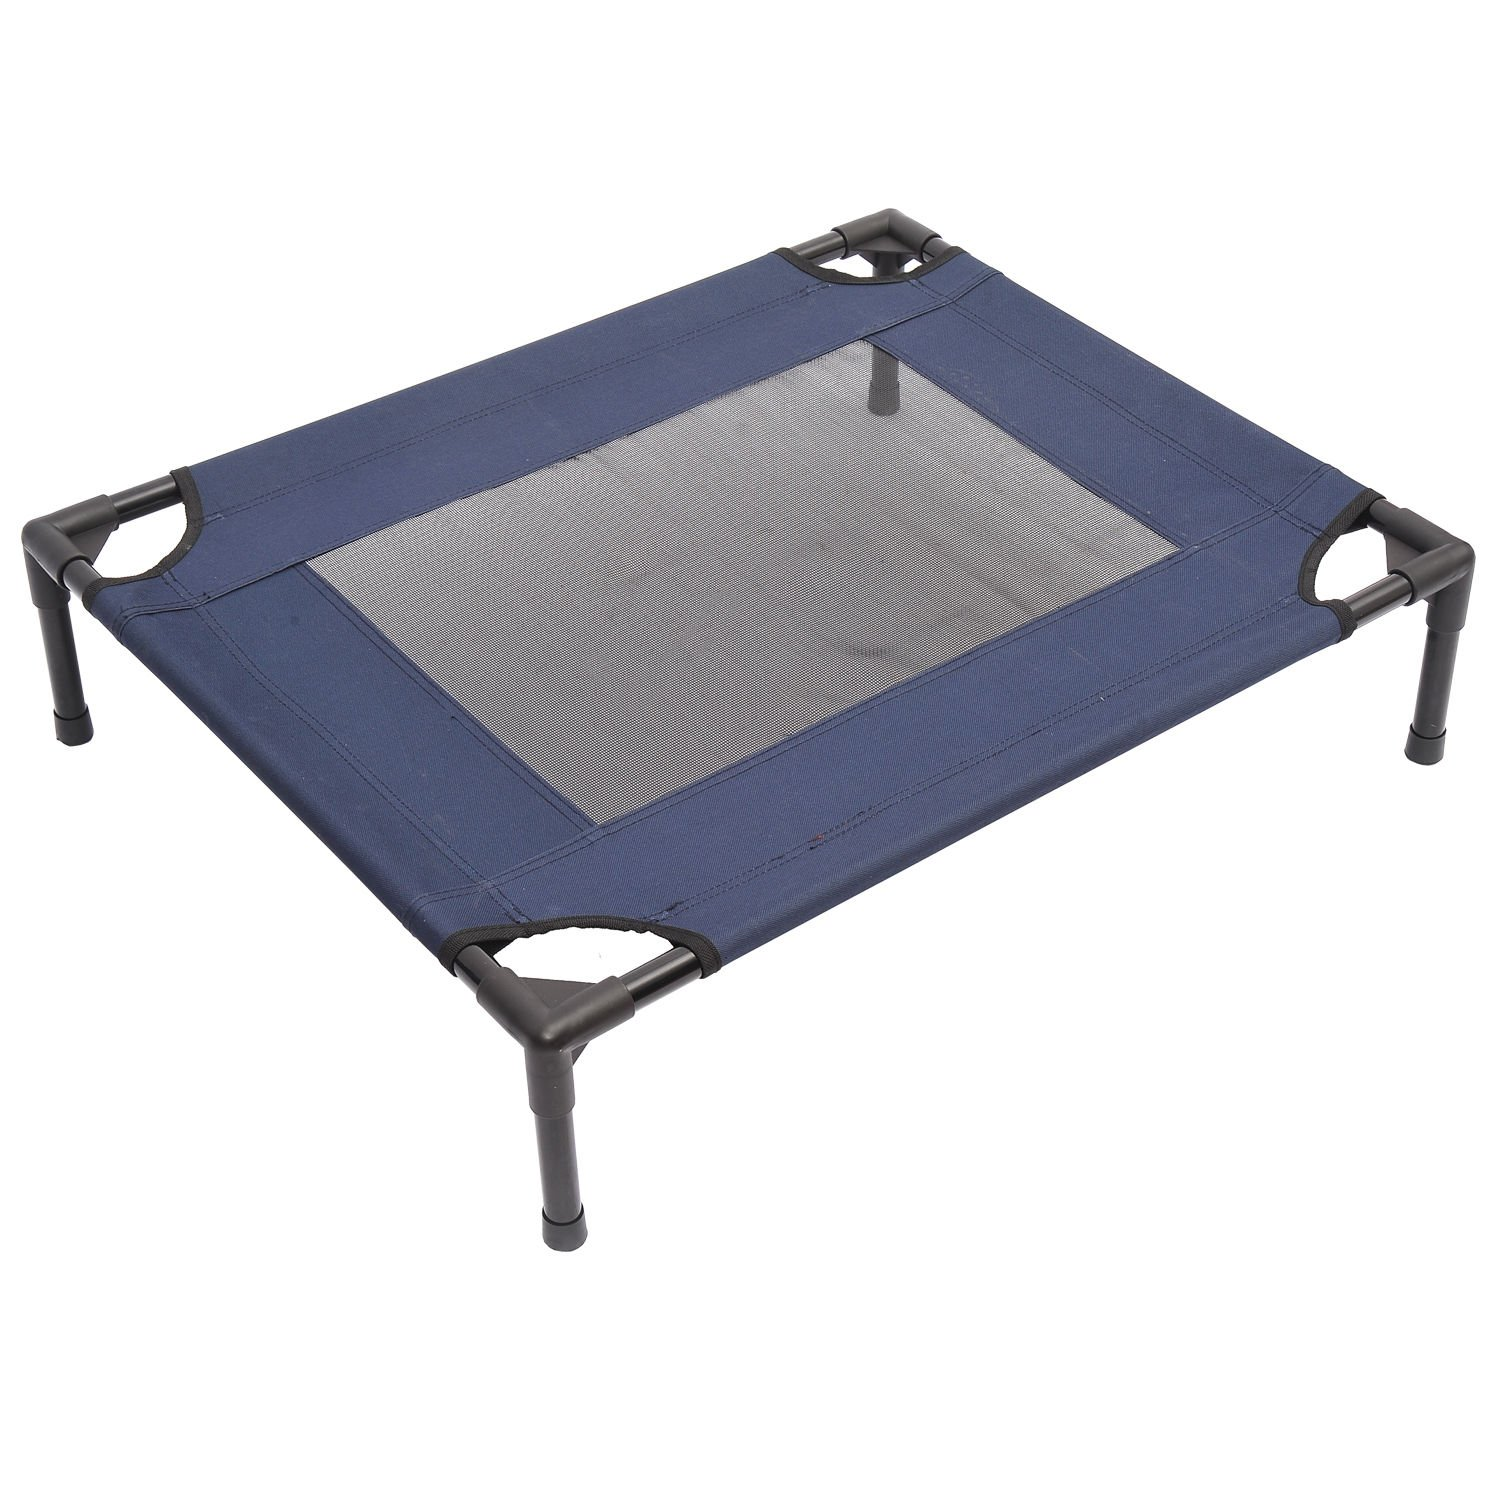 Eight24hours New Blue Indoor/Outdoor Portable Dog Cat Sleep Bed Elevated Camping Pet Cot + FREE E-Book